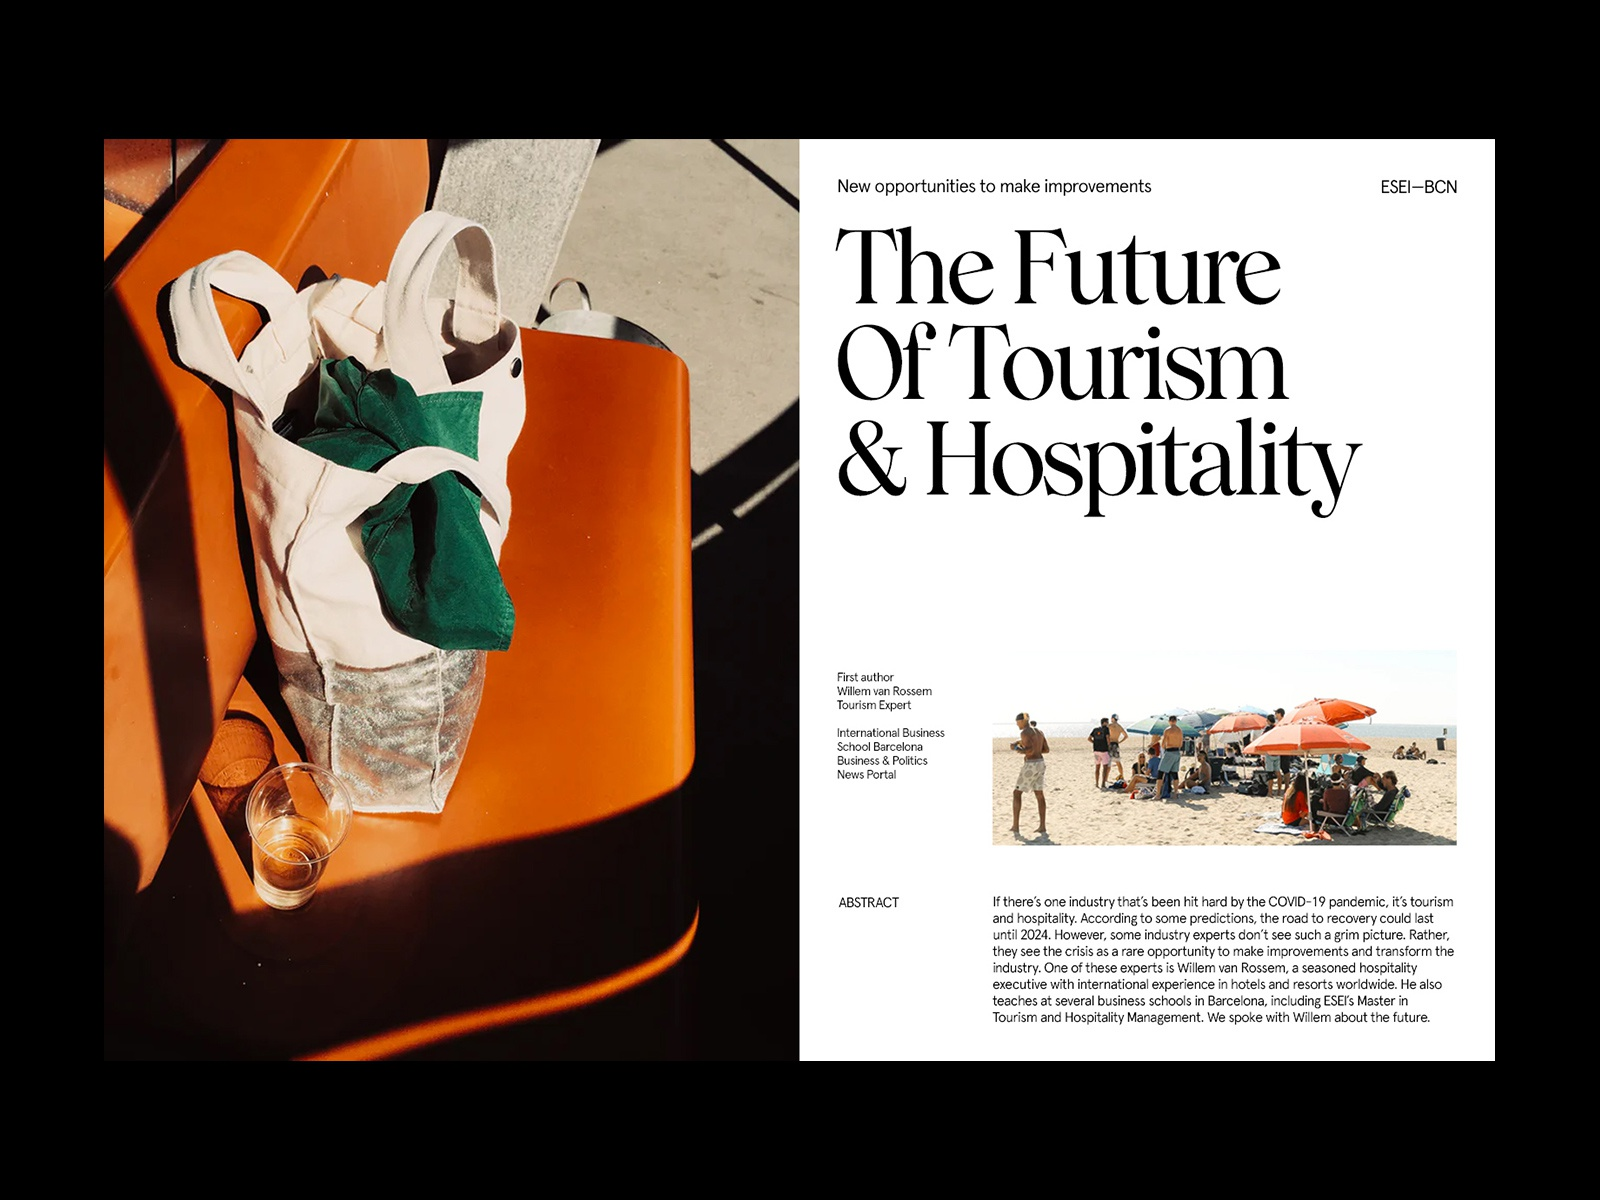 The Future Of Tourism — Article